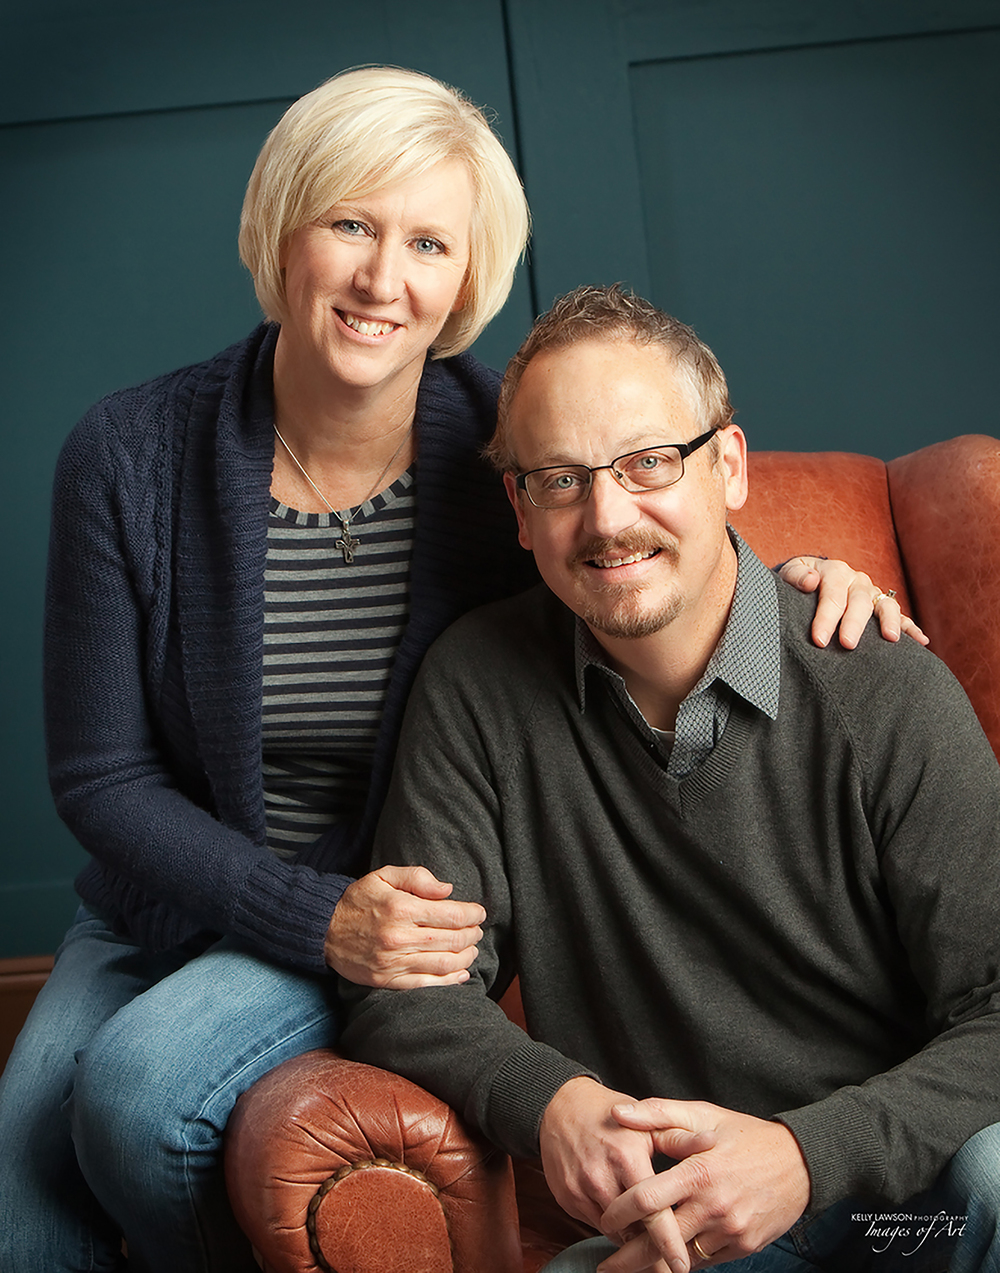 God's Resort Operations Director Julie St. Clair with her husband, Executive Director Jay St. Clair.